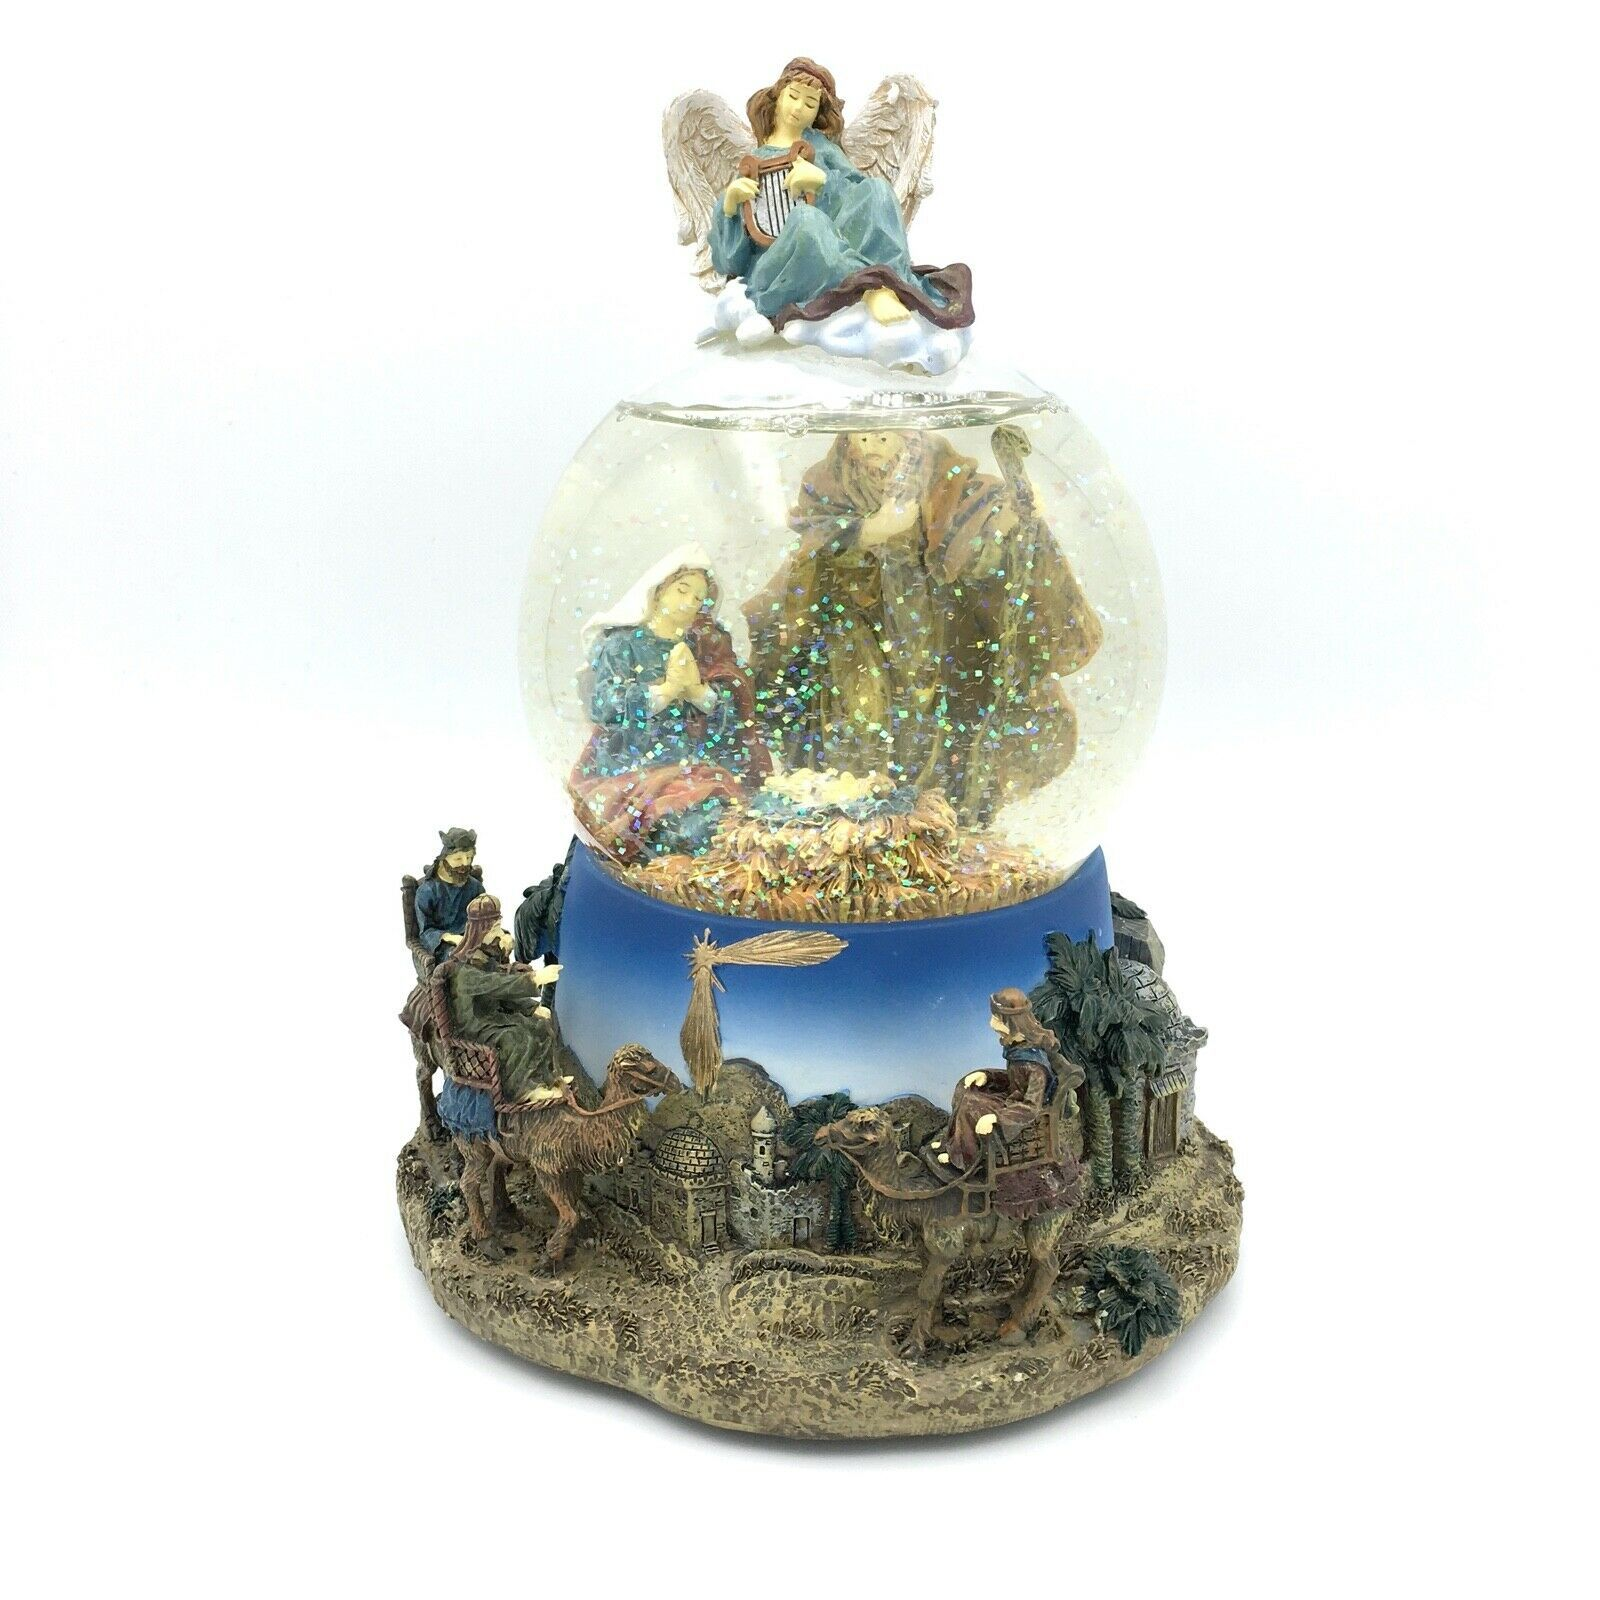 Primary image for SAN FRANCISCO MUSIC BOX snow globe - Little Town of Bethlehem nativity scene 7""